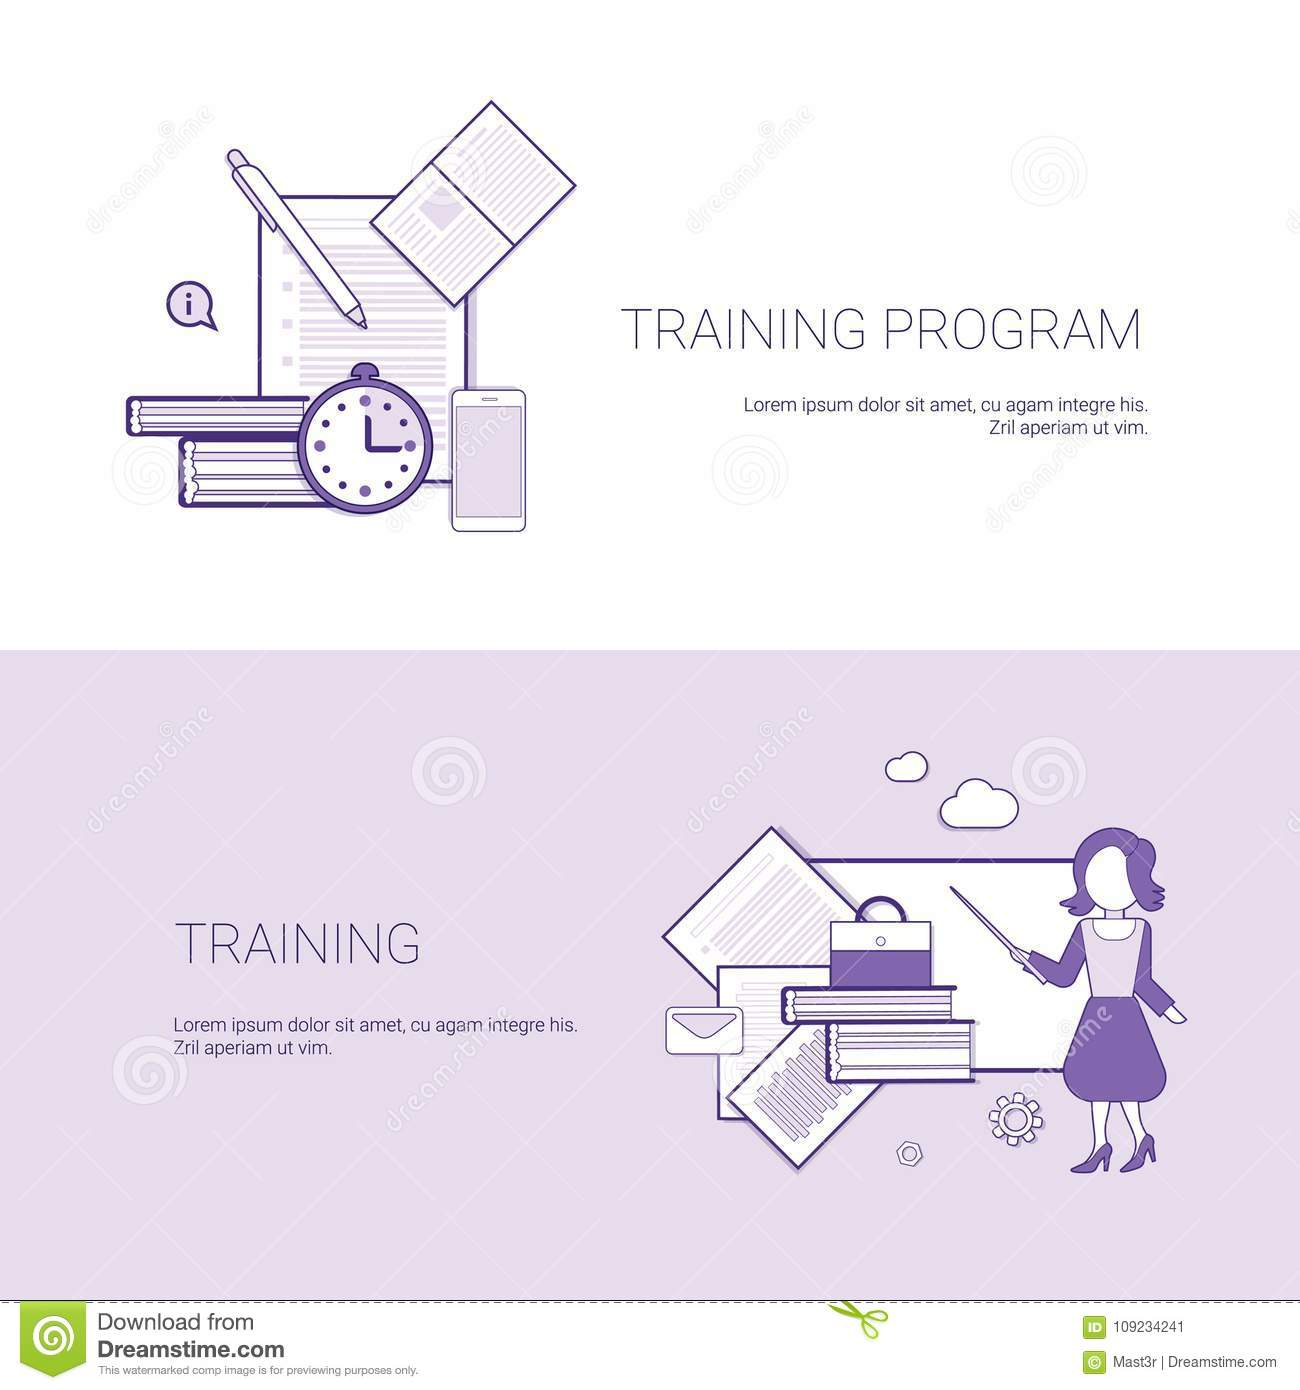 Set of training program banners business concept template background download set of training program banners business concept template background with copy space stock vector ccuart Image collections